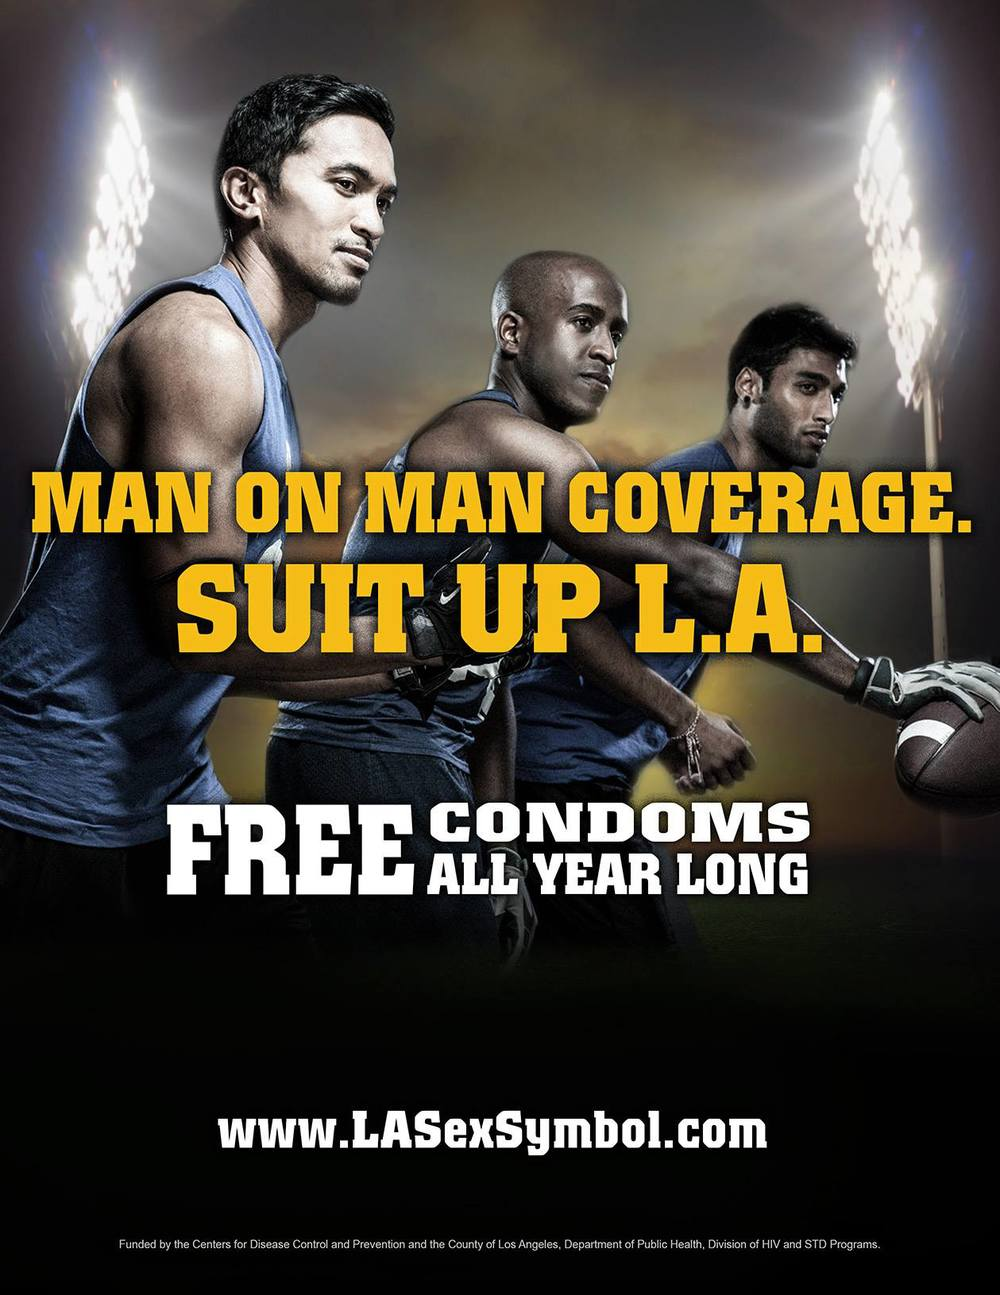 LA Sex Symbol Campaign Photography by Bradford Rogne